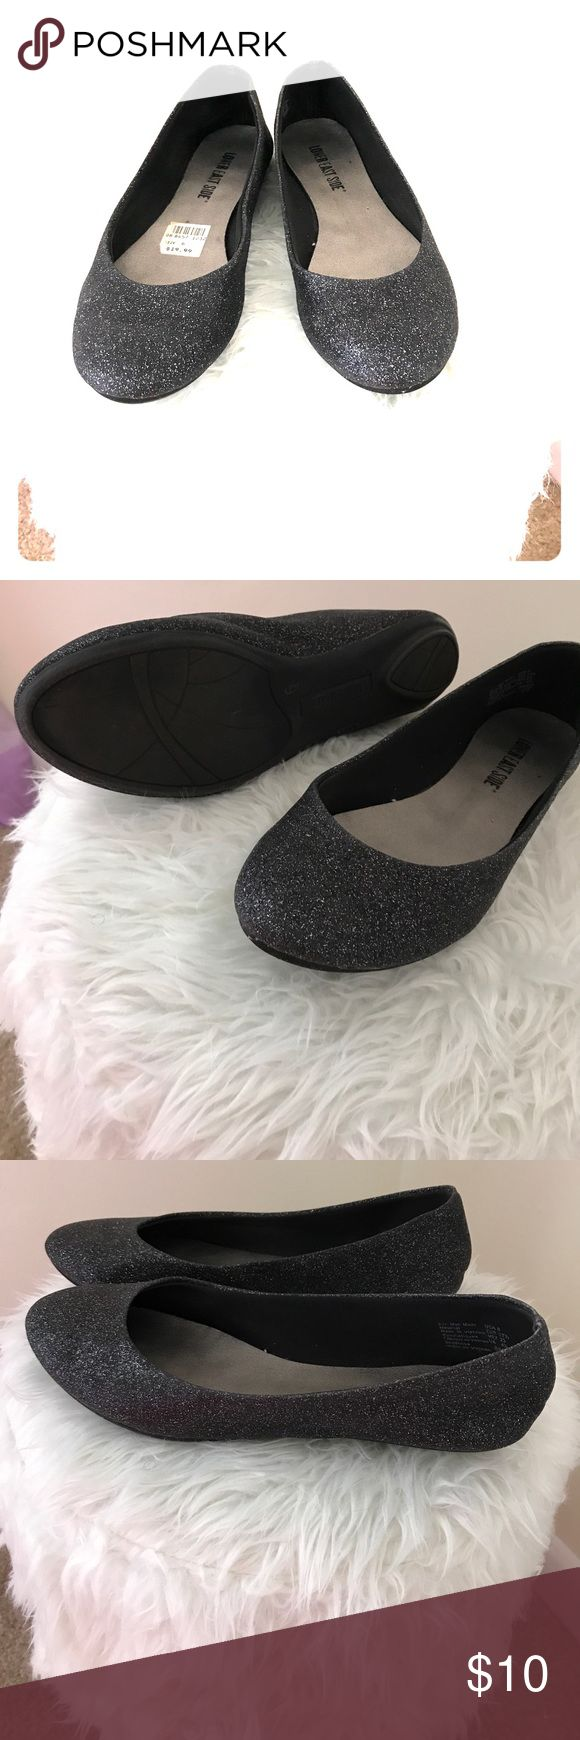 Cute Black Sparkle Flats Cute Black Flats, that's sparkle ✨. Great condition, like New only worn once. Size 6 Shoes Flats & Loafers